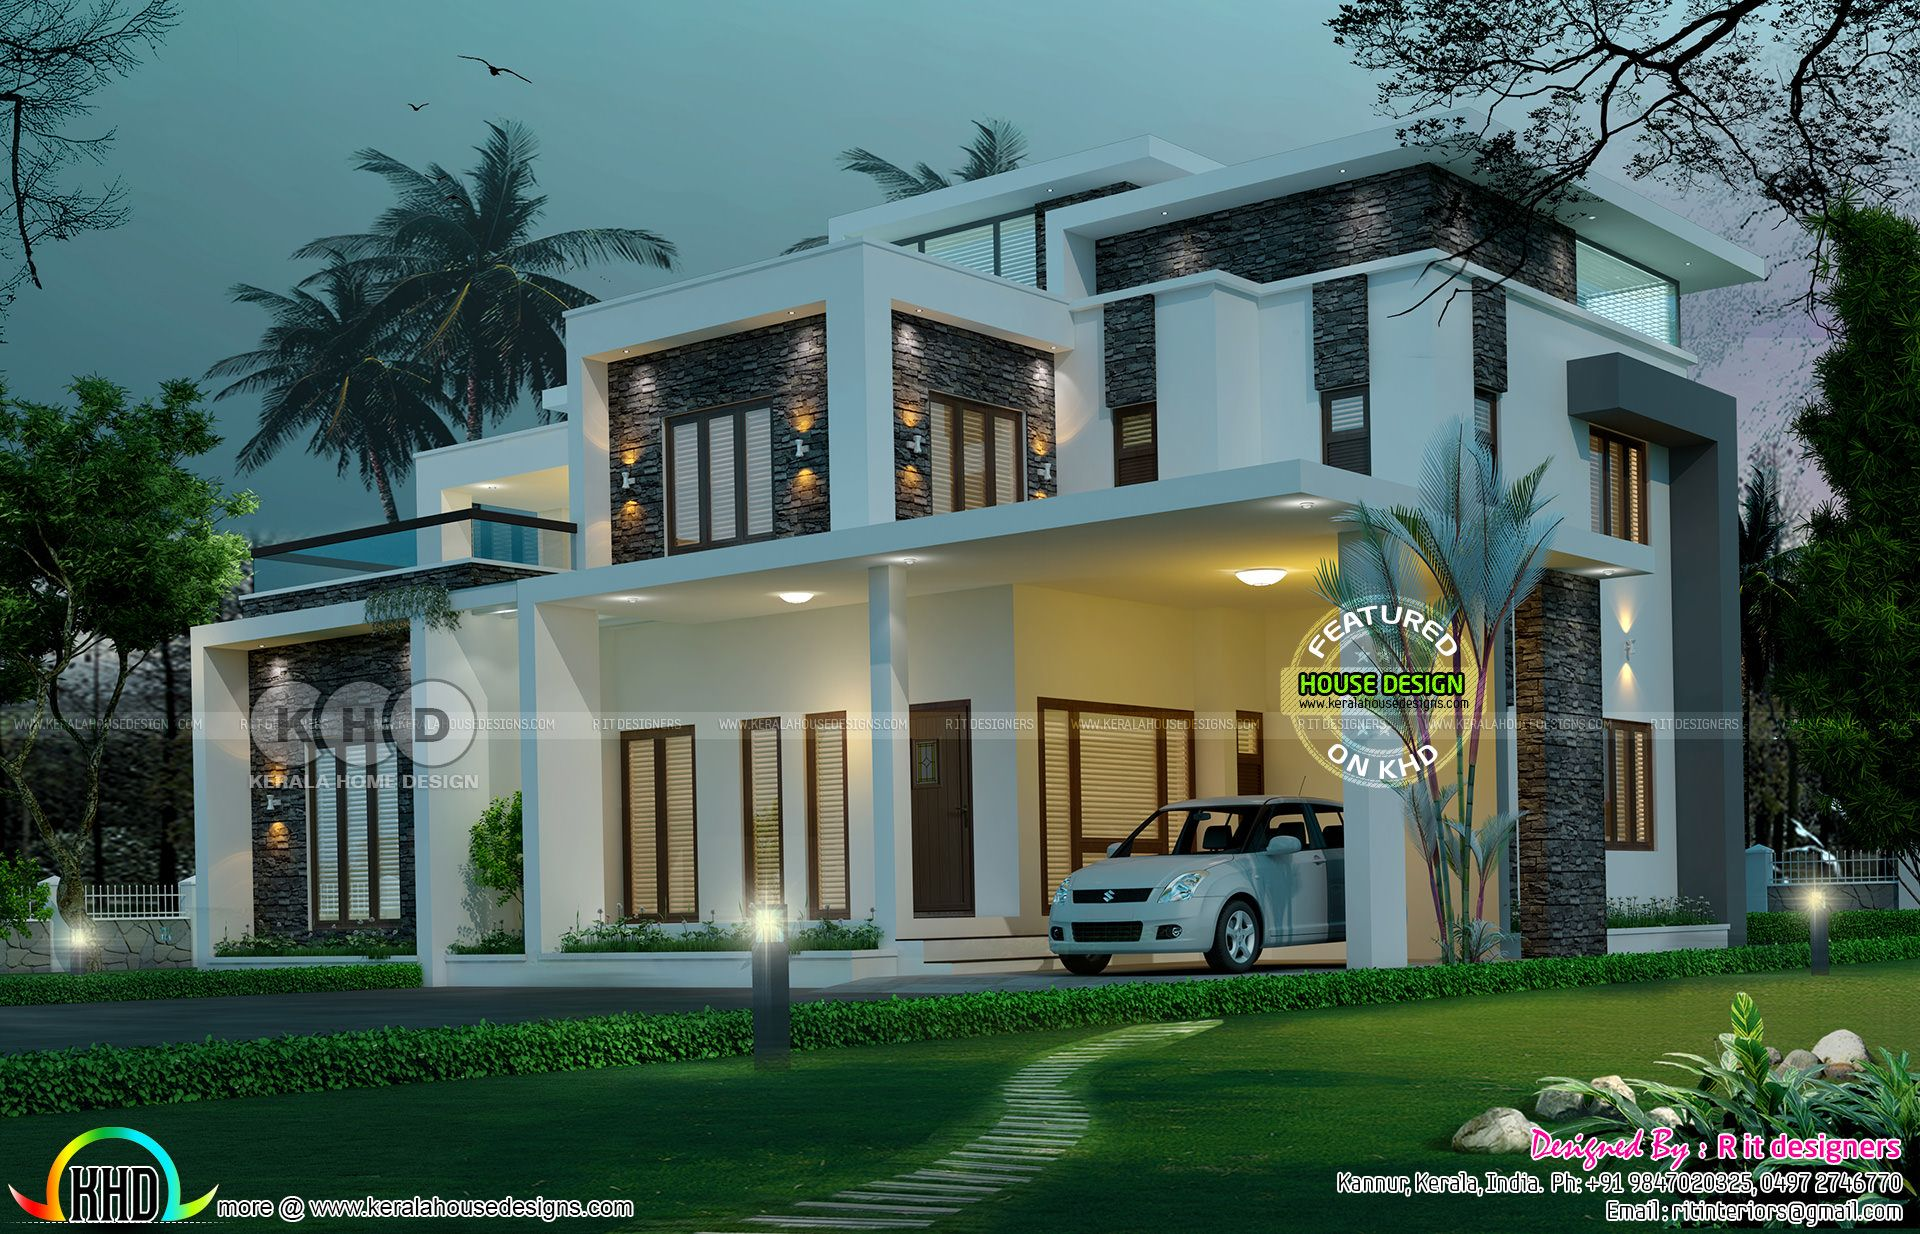 5 bedroom luxurious contemporary model flat roof house